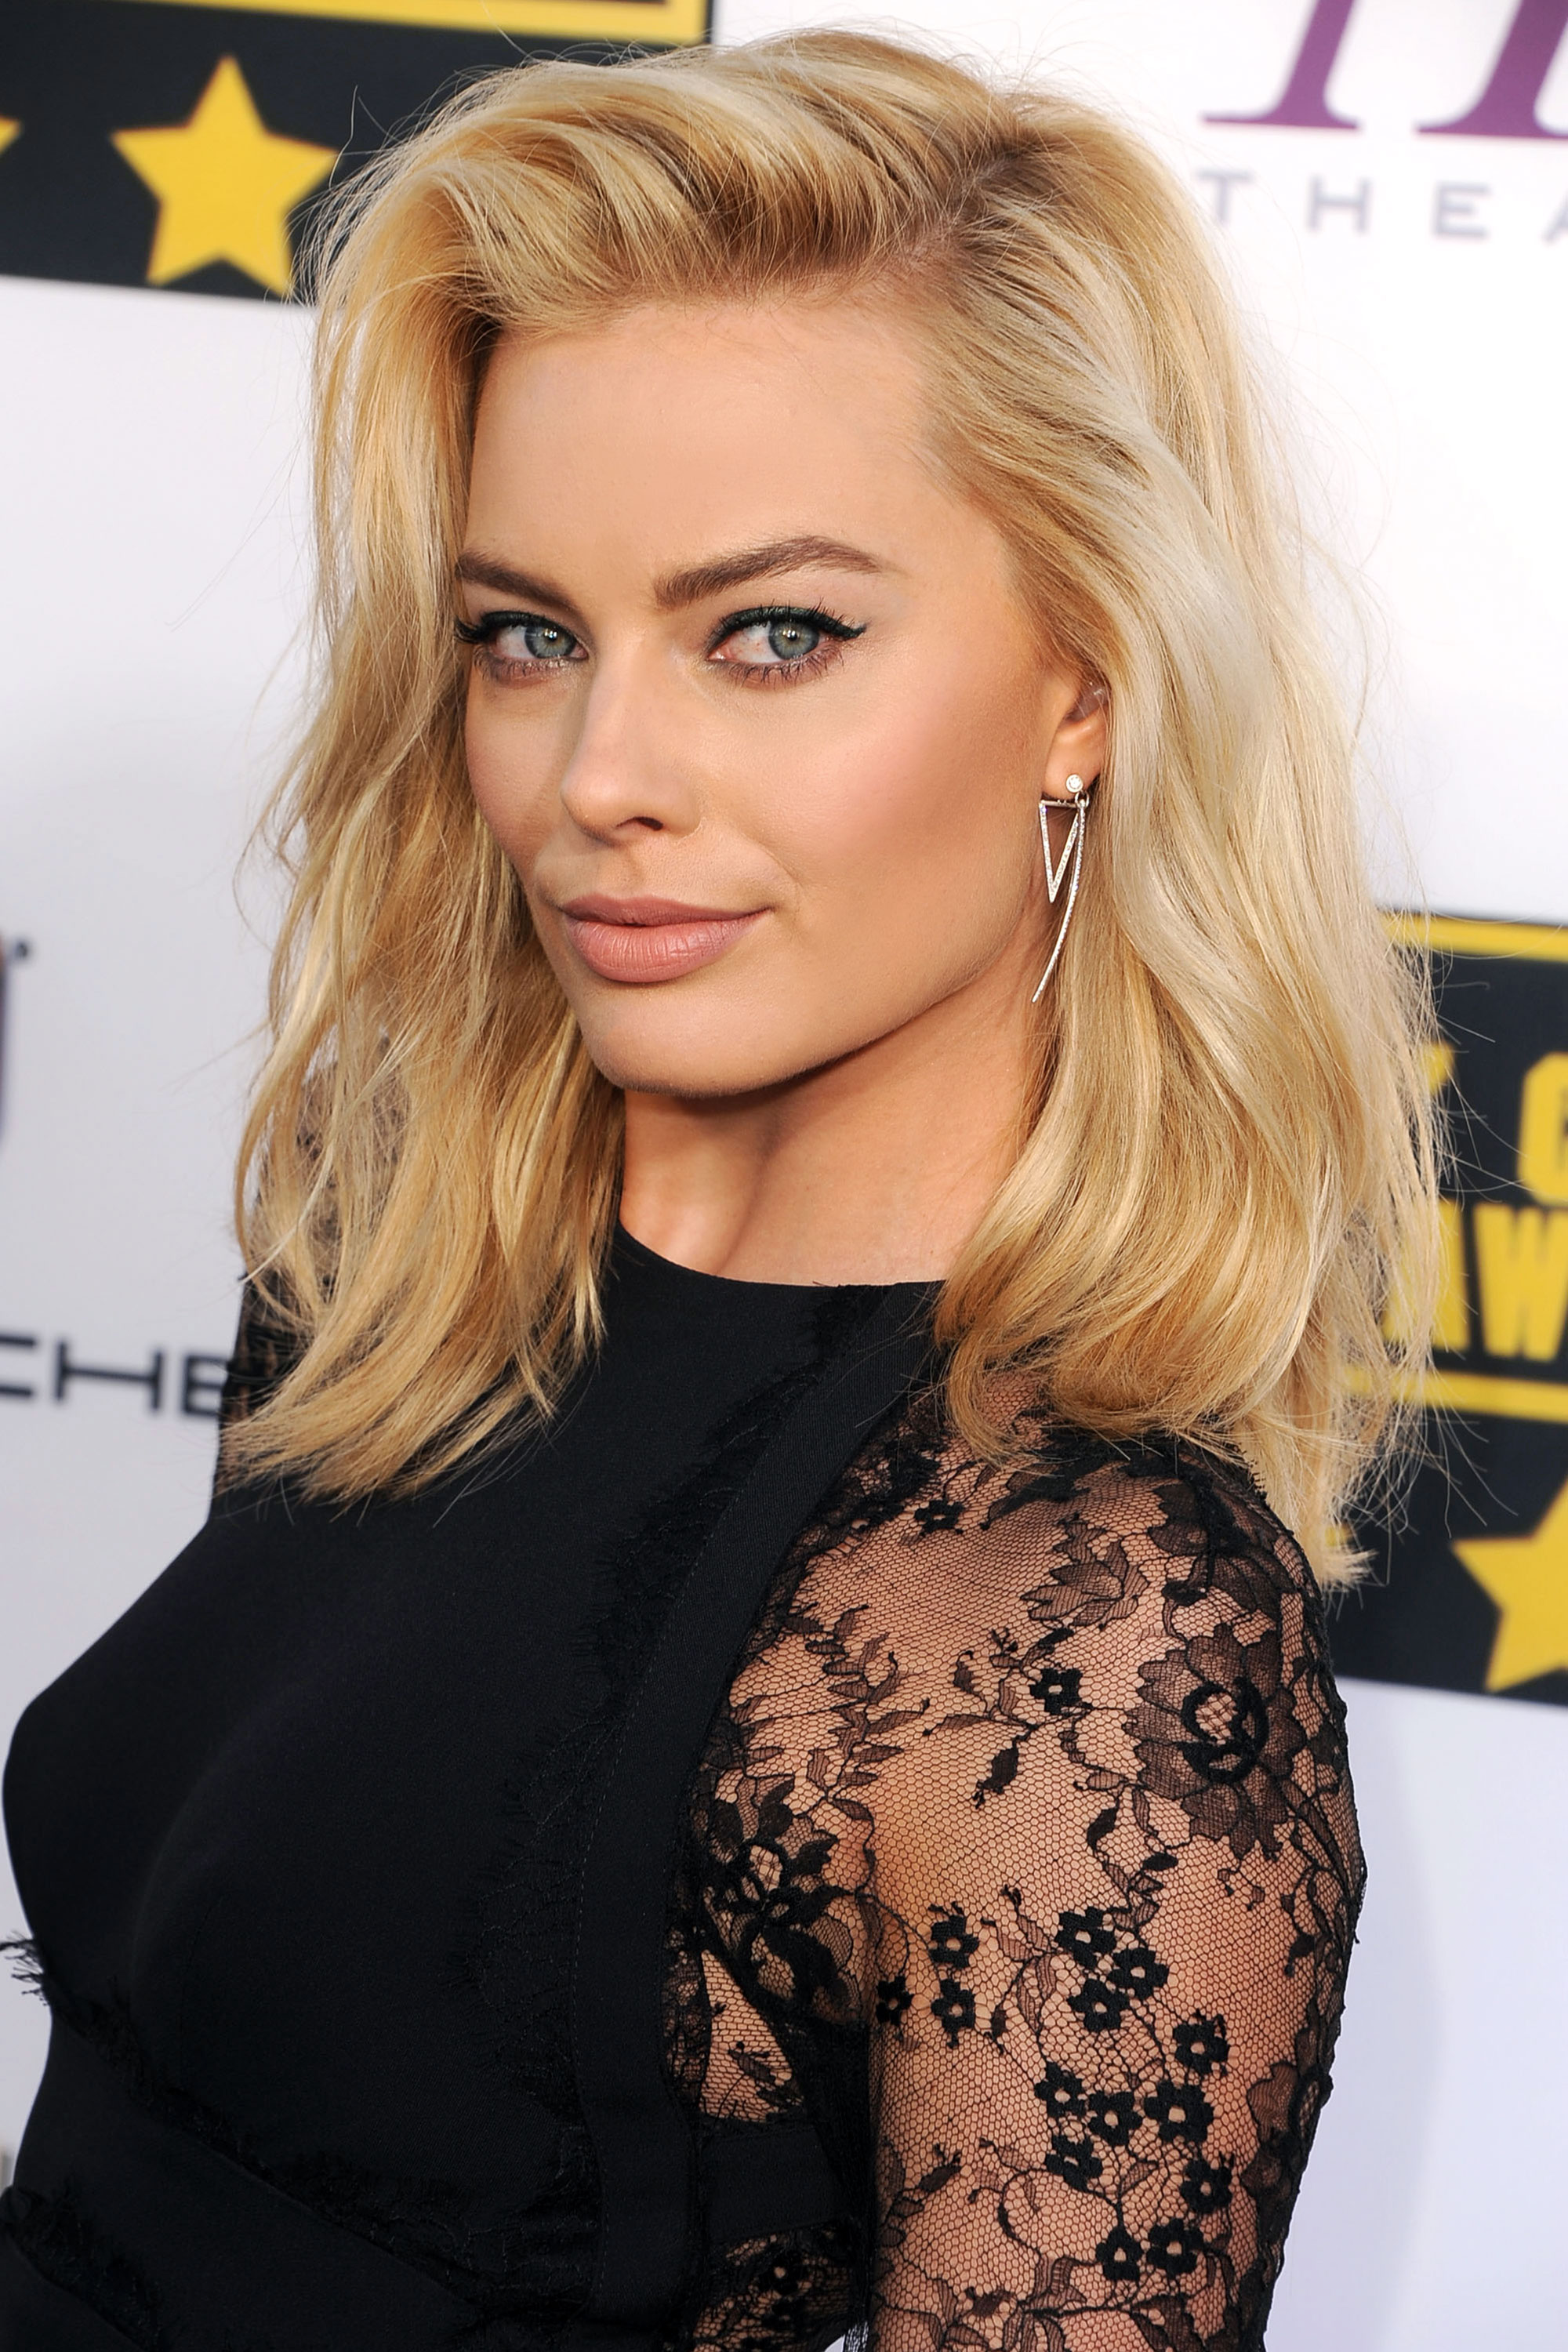 Fine 33 Best Medium Hairstyles Celebrities With Shoulder Length Haircuts Short Hairstyles For Black Women Fulllsitofus